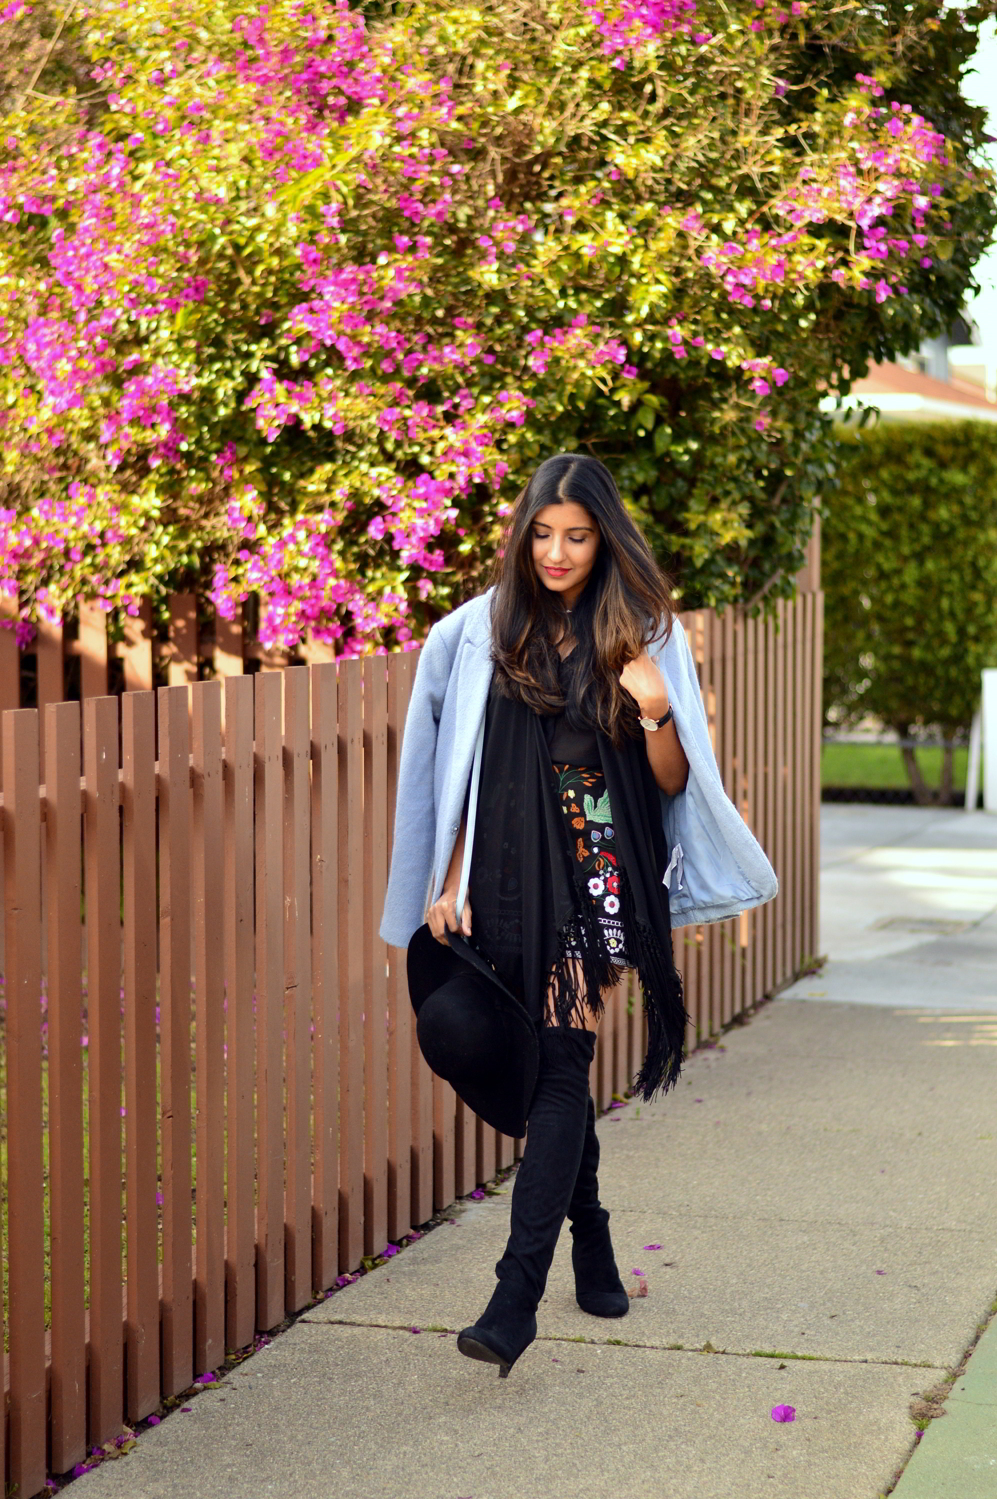 embroidered-skirt-fringe-blouse-winter-layers-blogger-outfit 4